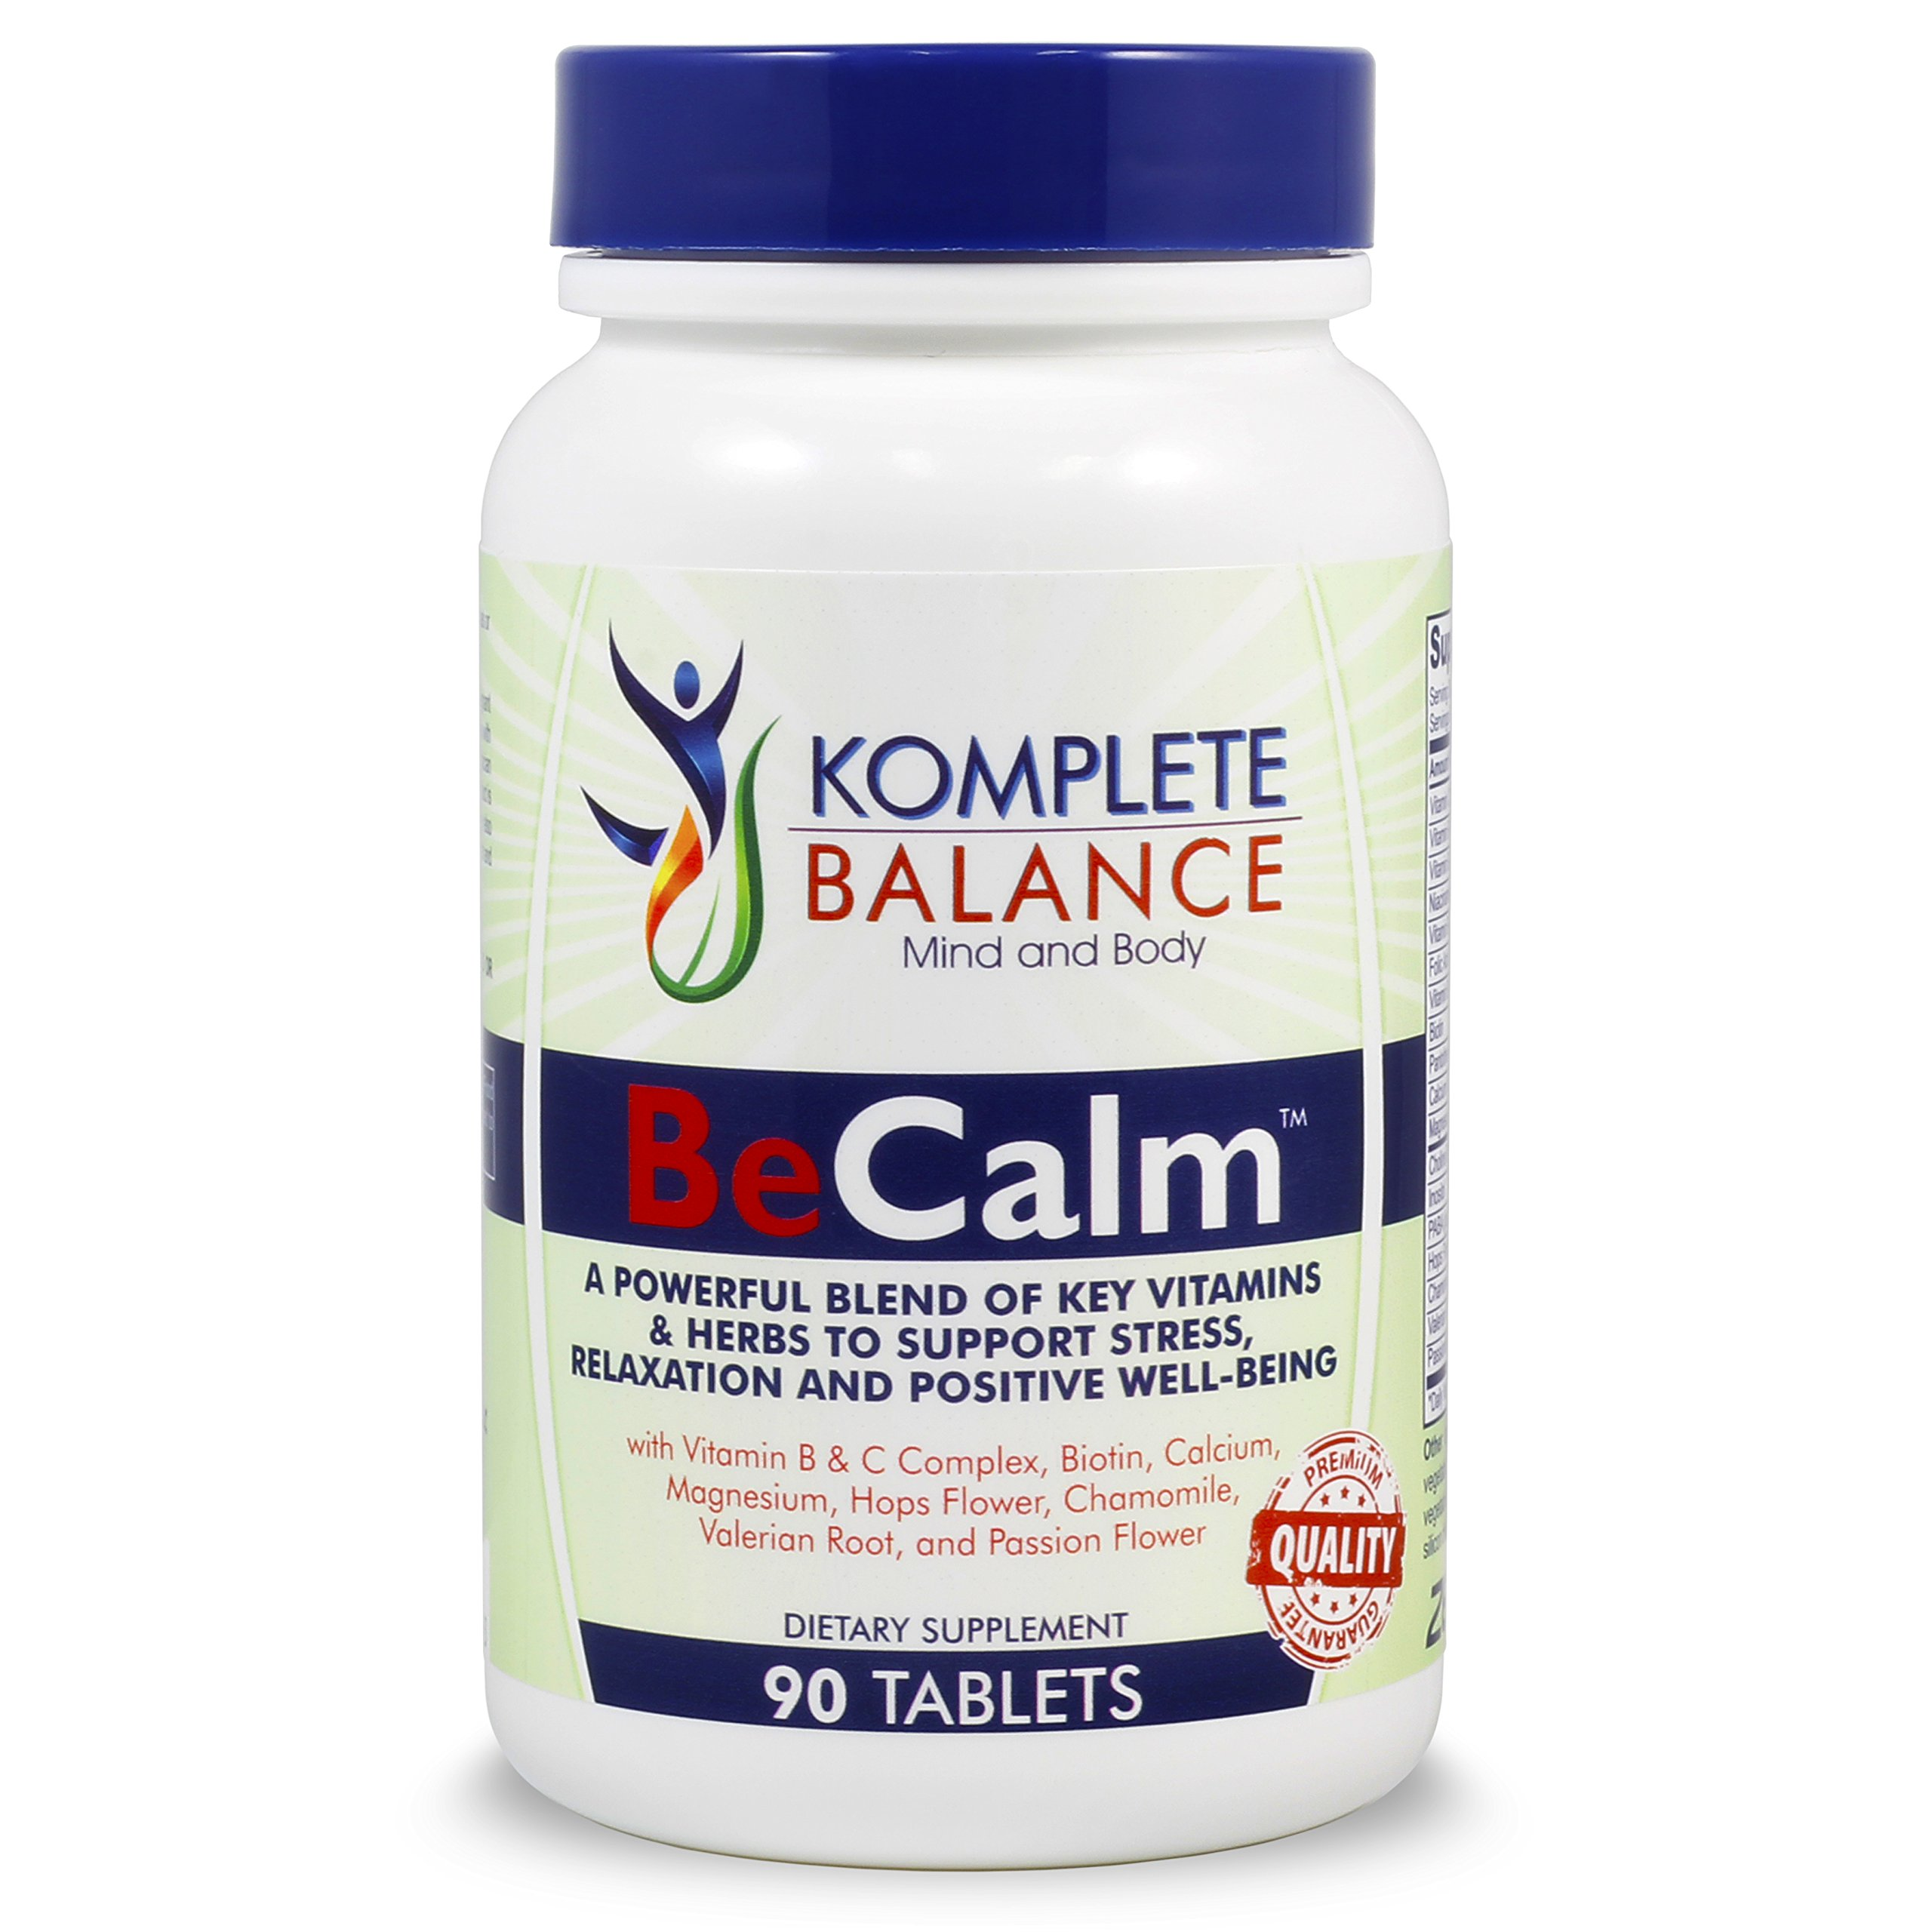 BeCalm   Premium Stress & Anxiety Relief Supplement, Natural Sleep Aid, Adrenal Support, Cortisol Manager, Mood Booster - Vitamin B Complex, Valerian Root & Chamomile To Calm, Soothe & Relax- 90 Count